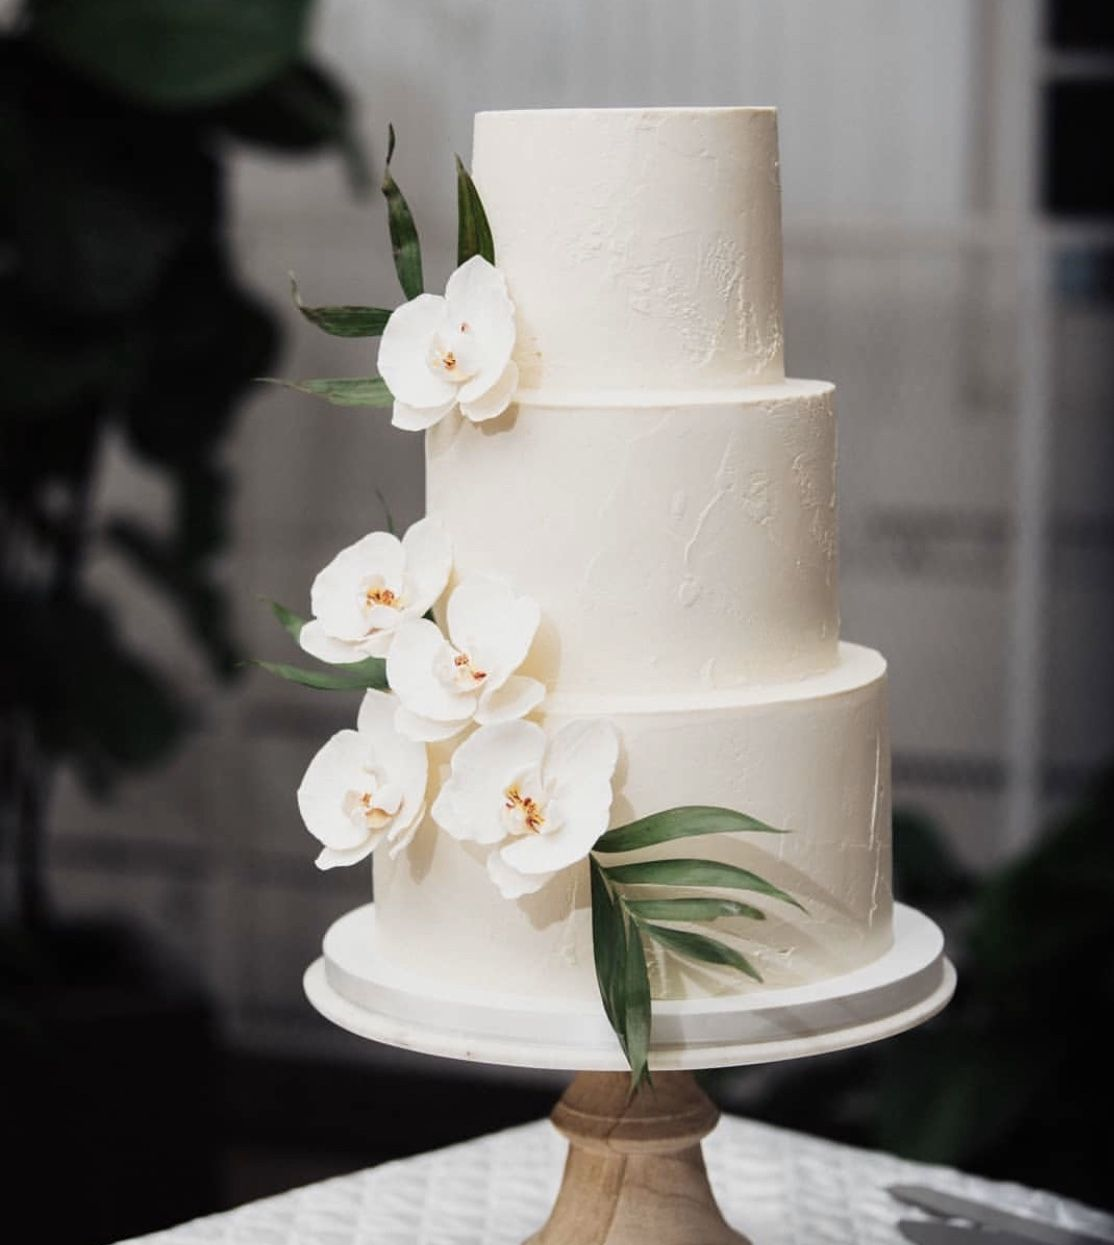 Simple Tiered Wedding Cake With Natural Phalaenopsis Orchids